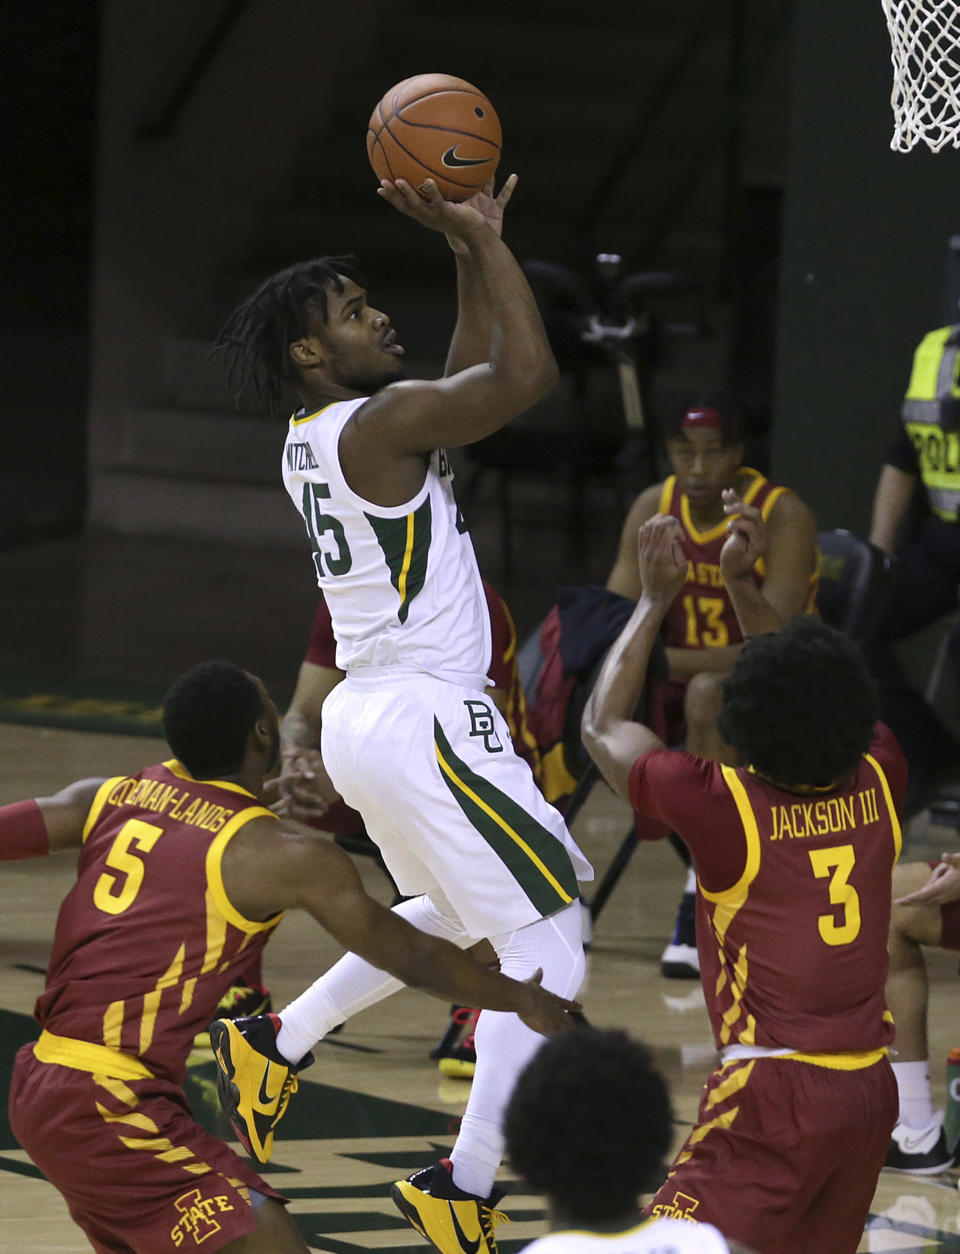 Baylor guard Davion Mitchell (45) scores between Iowa State defenders Jalen Coleman-Lands (5) and Tre Jackson (3) in the first half of an NCAA college basketball game, Tuesday, Feb. 23, 2021, in Waco, Texas. (AP Photo/Jerry Larson)